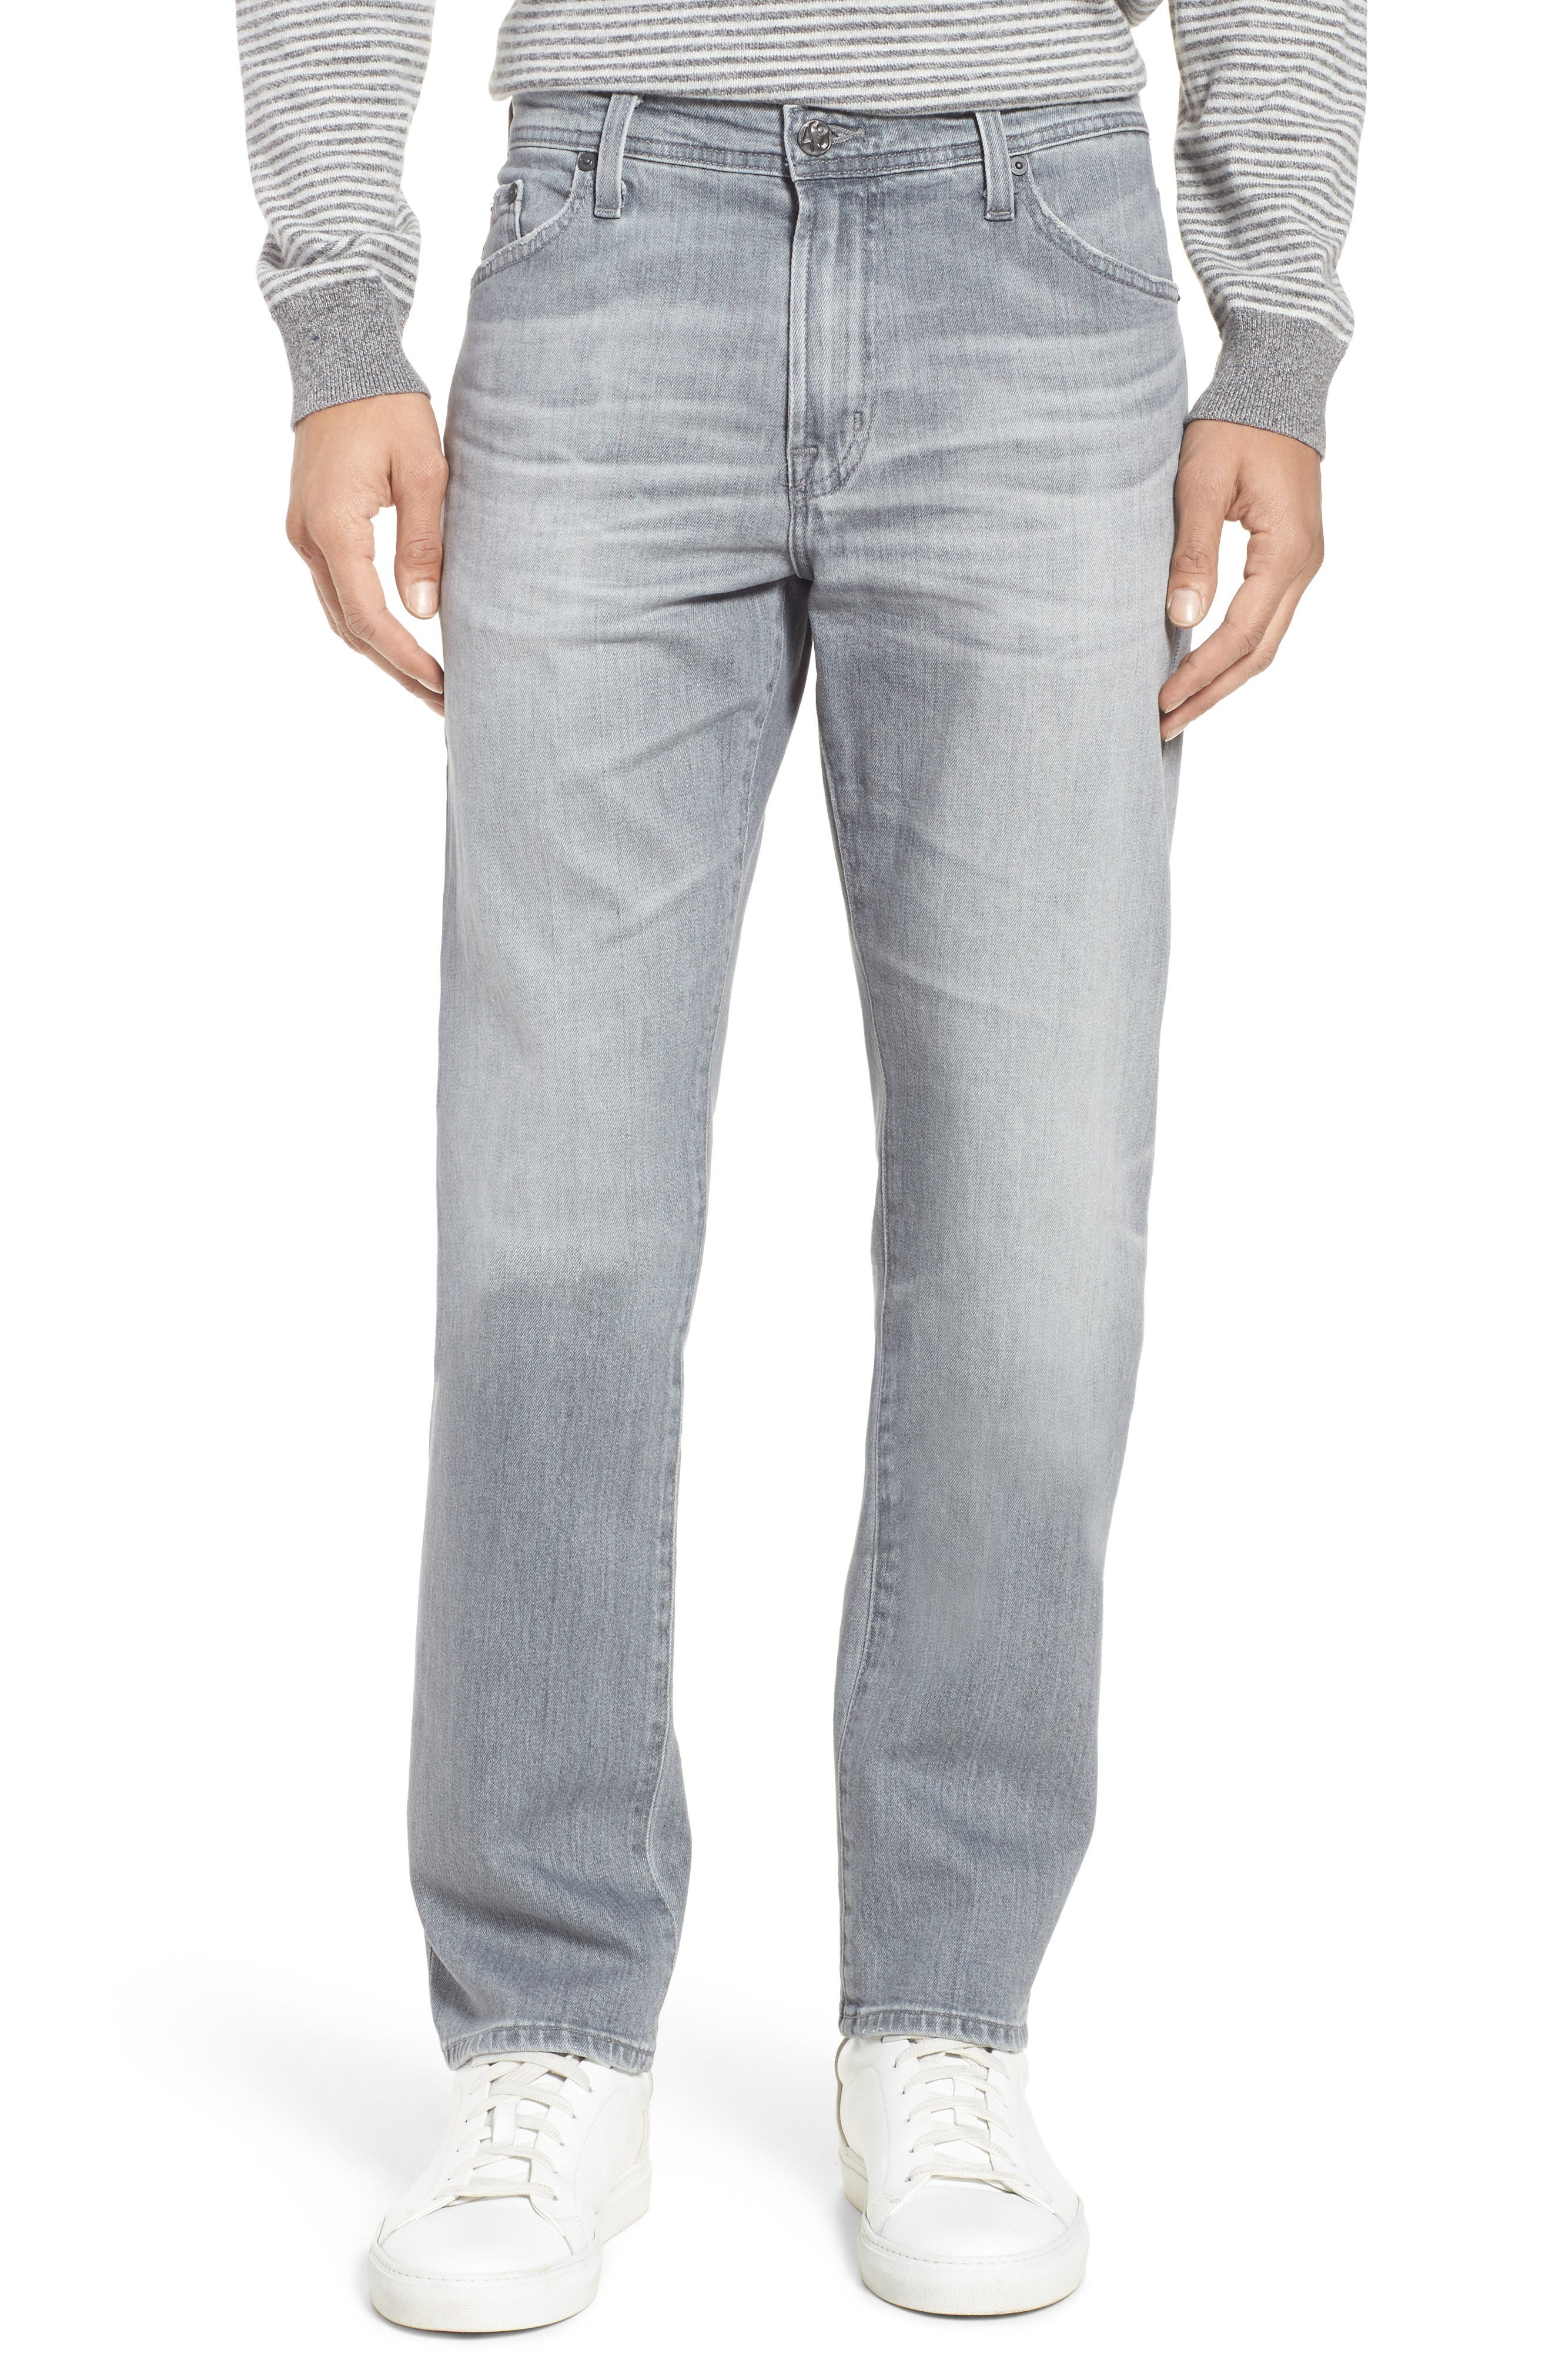 Everett Slim Straight Fit Jeans,                         Main,                         color,